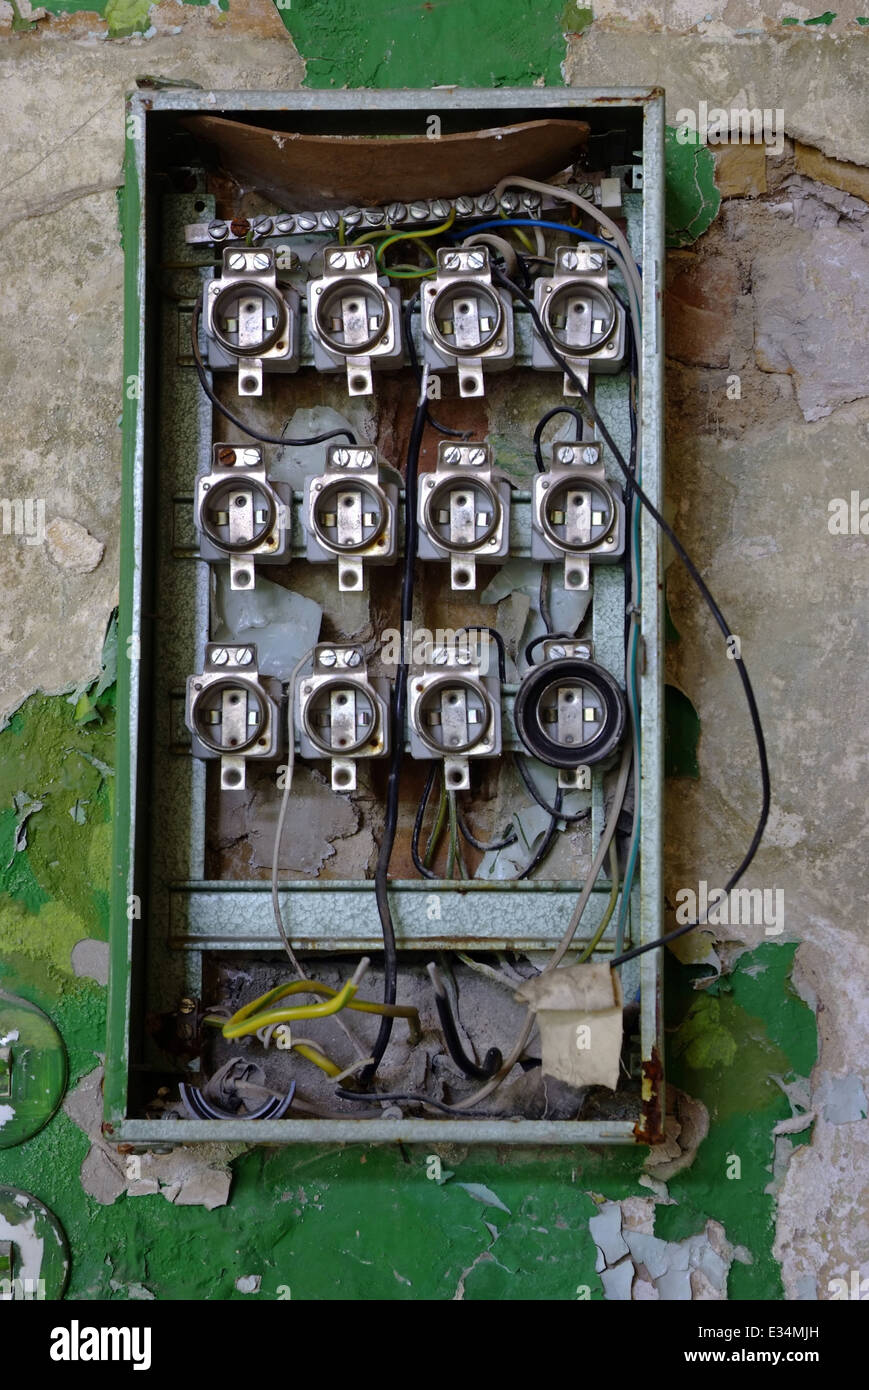 Fuse Box House Stock Photos Images Alamy Old In An Abandoned Image